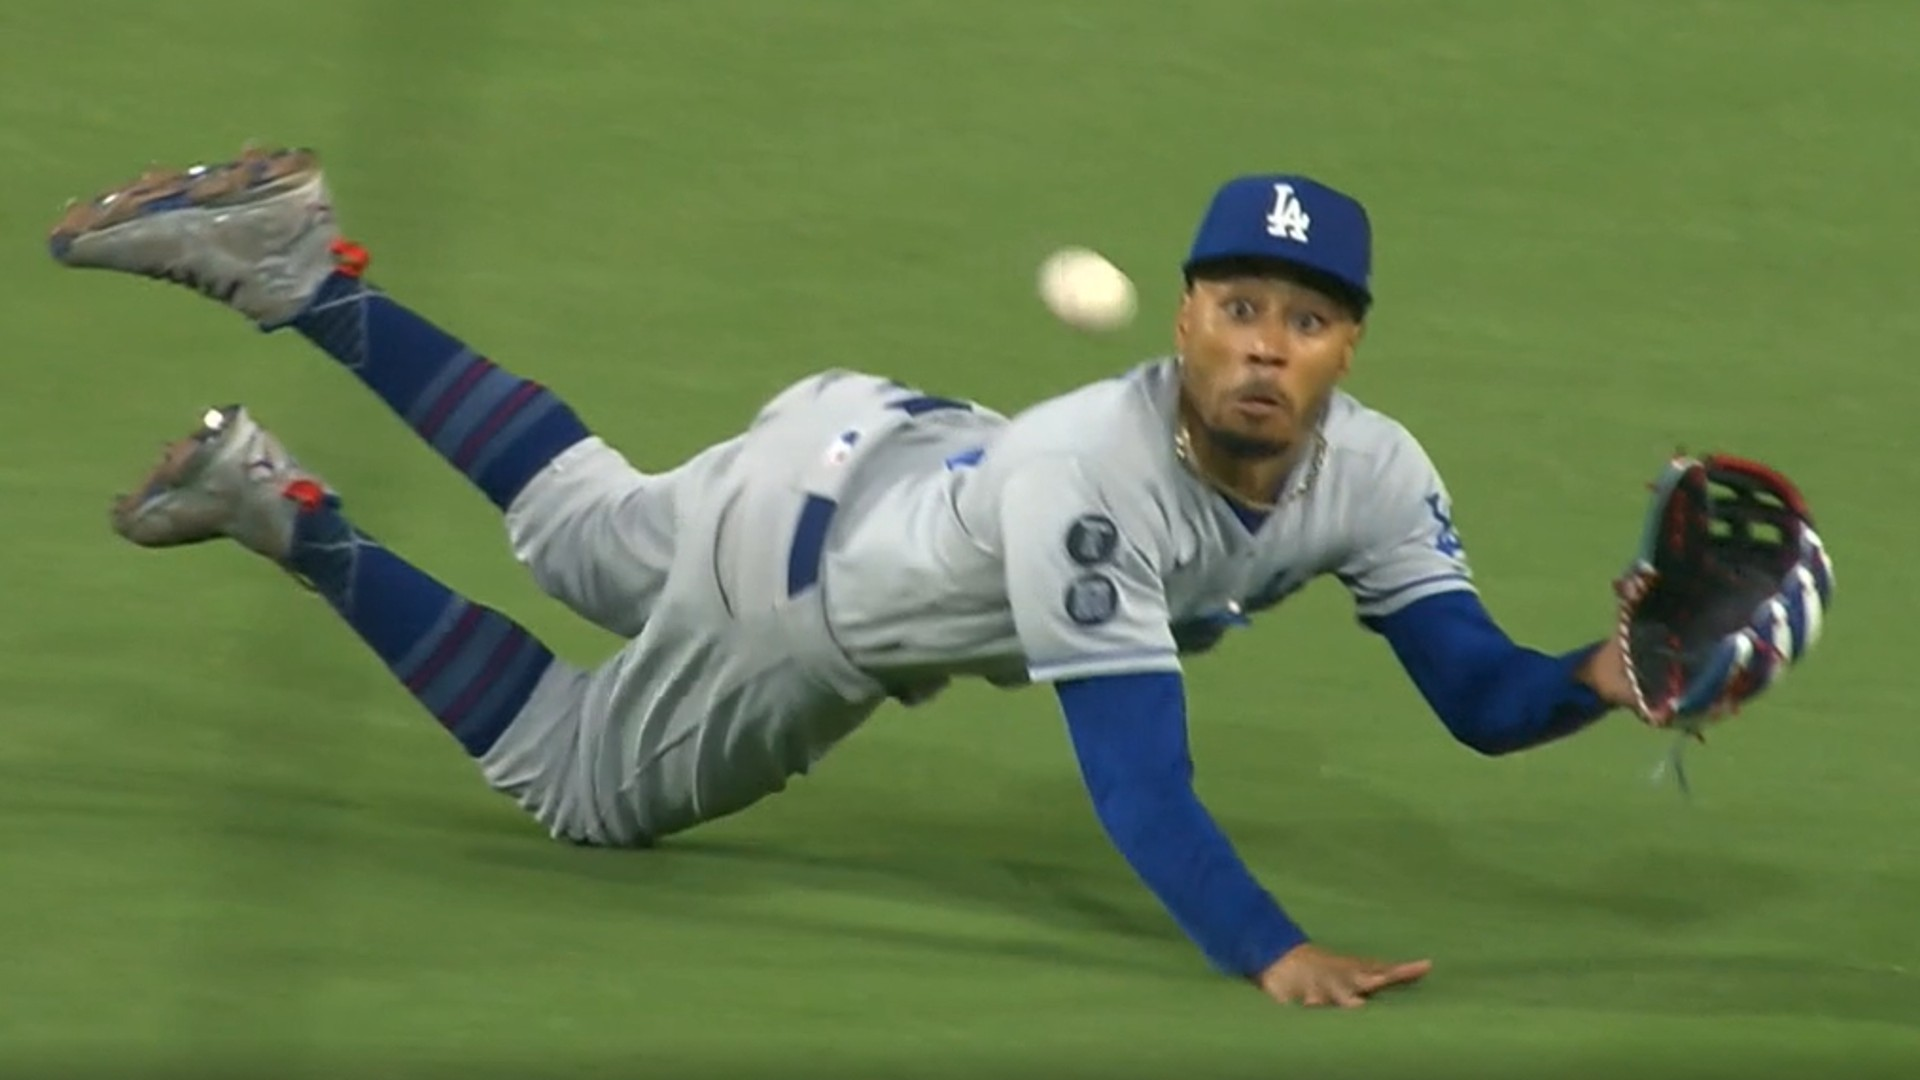 Mookie Betts diving saves the Dodgers from another strain the Padres have gained